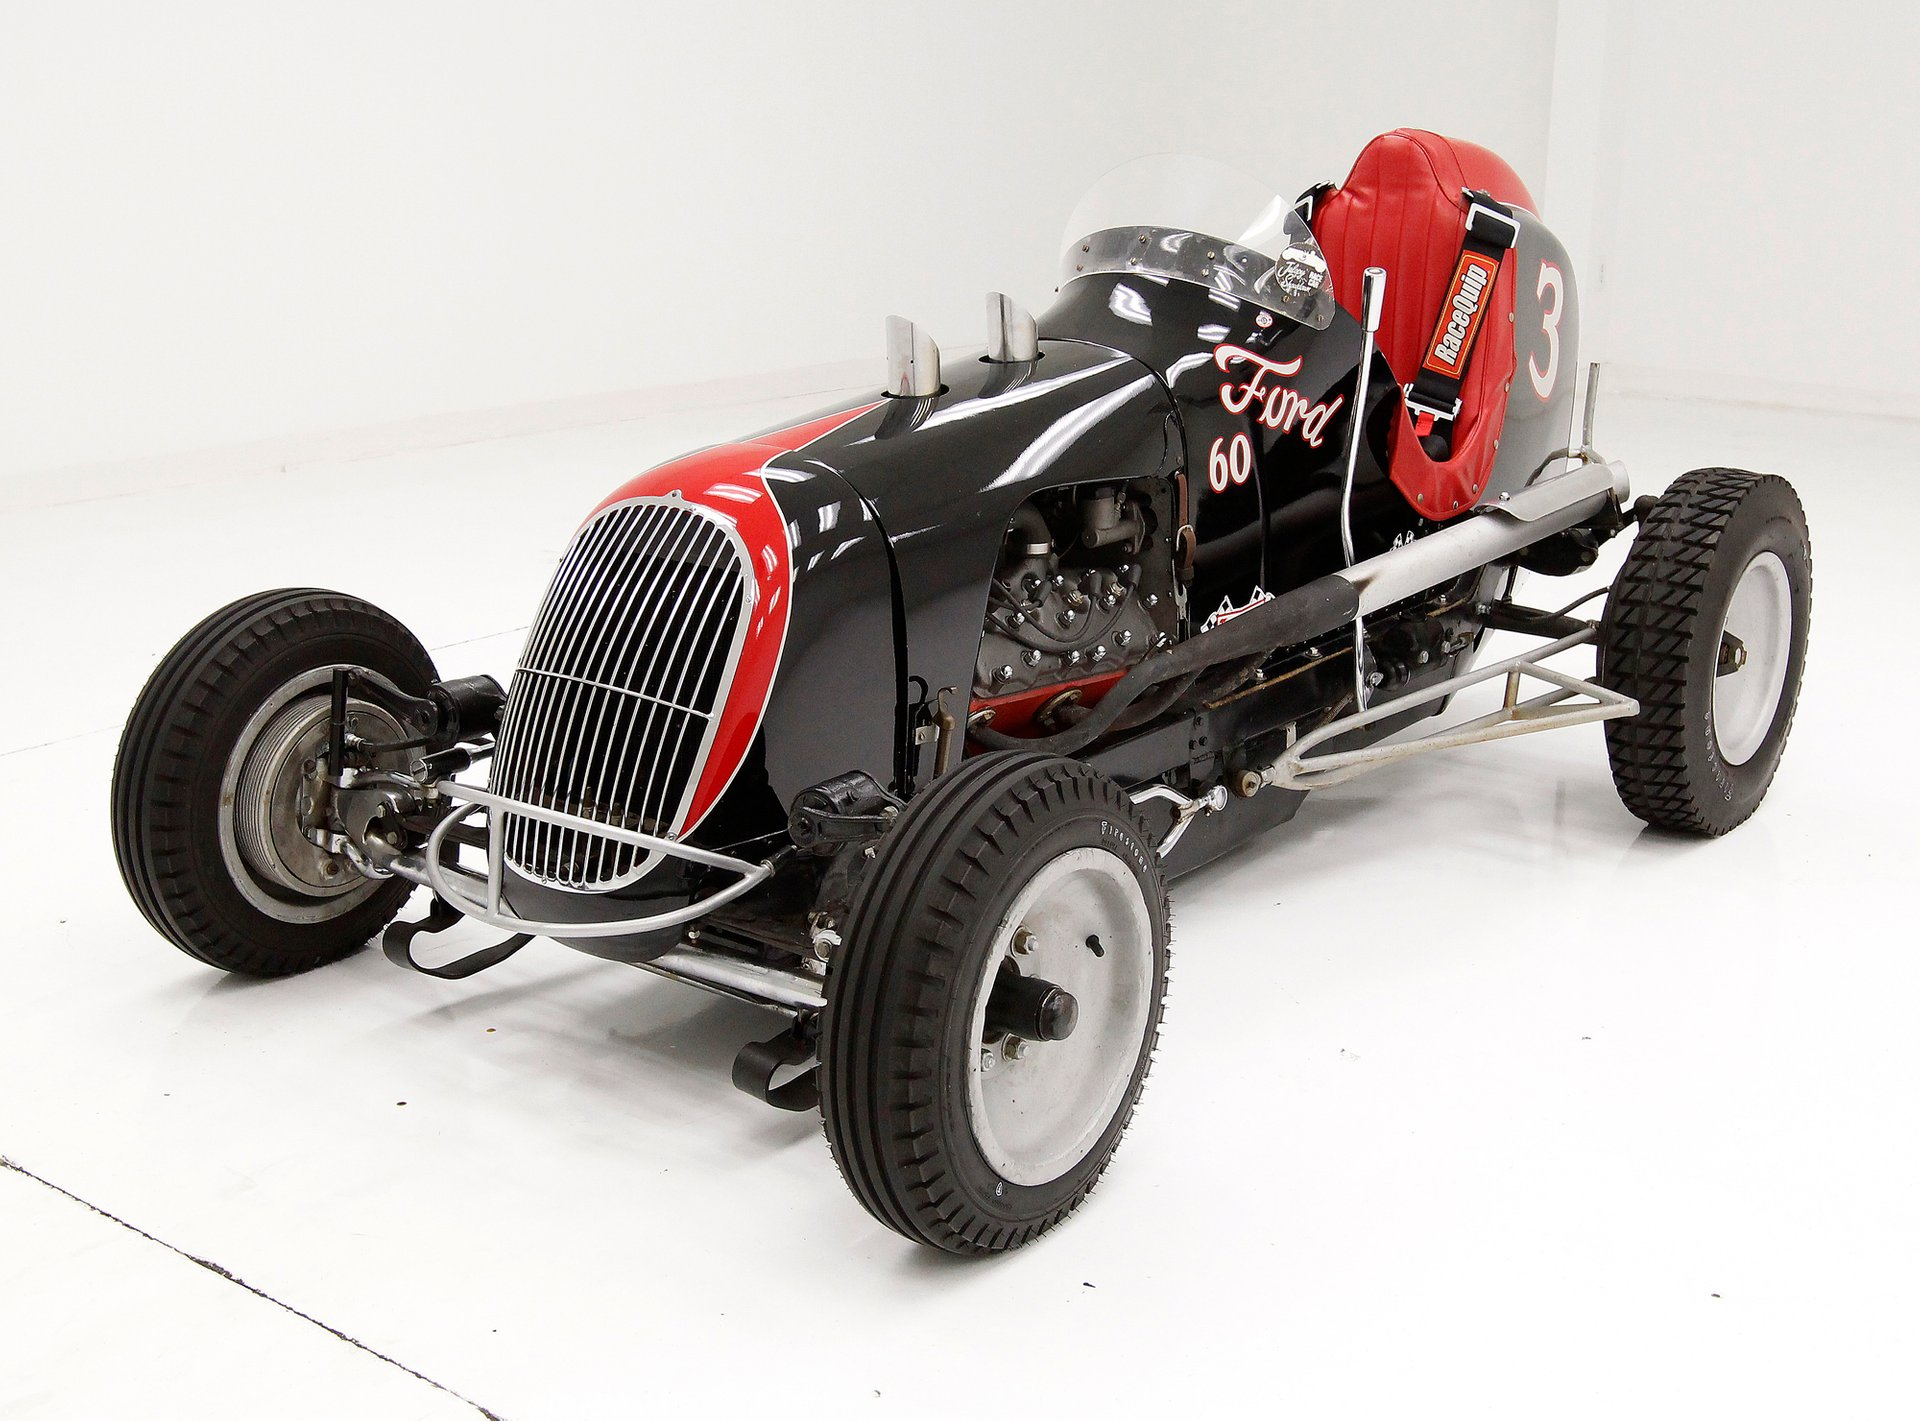 1946 Hillegas Midget Race Car